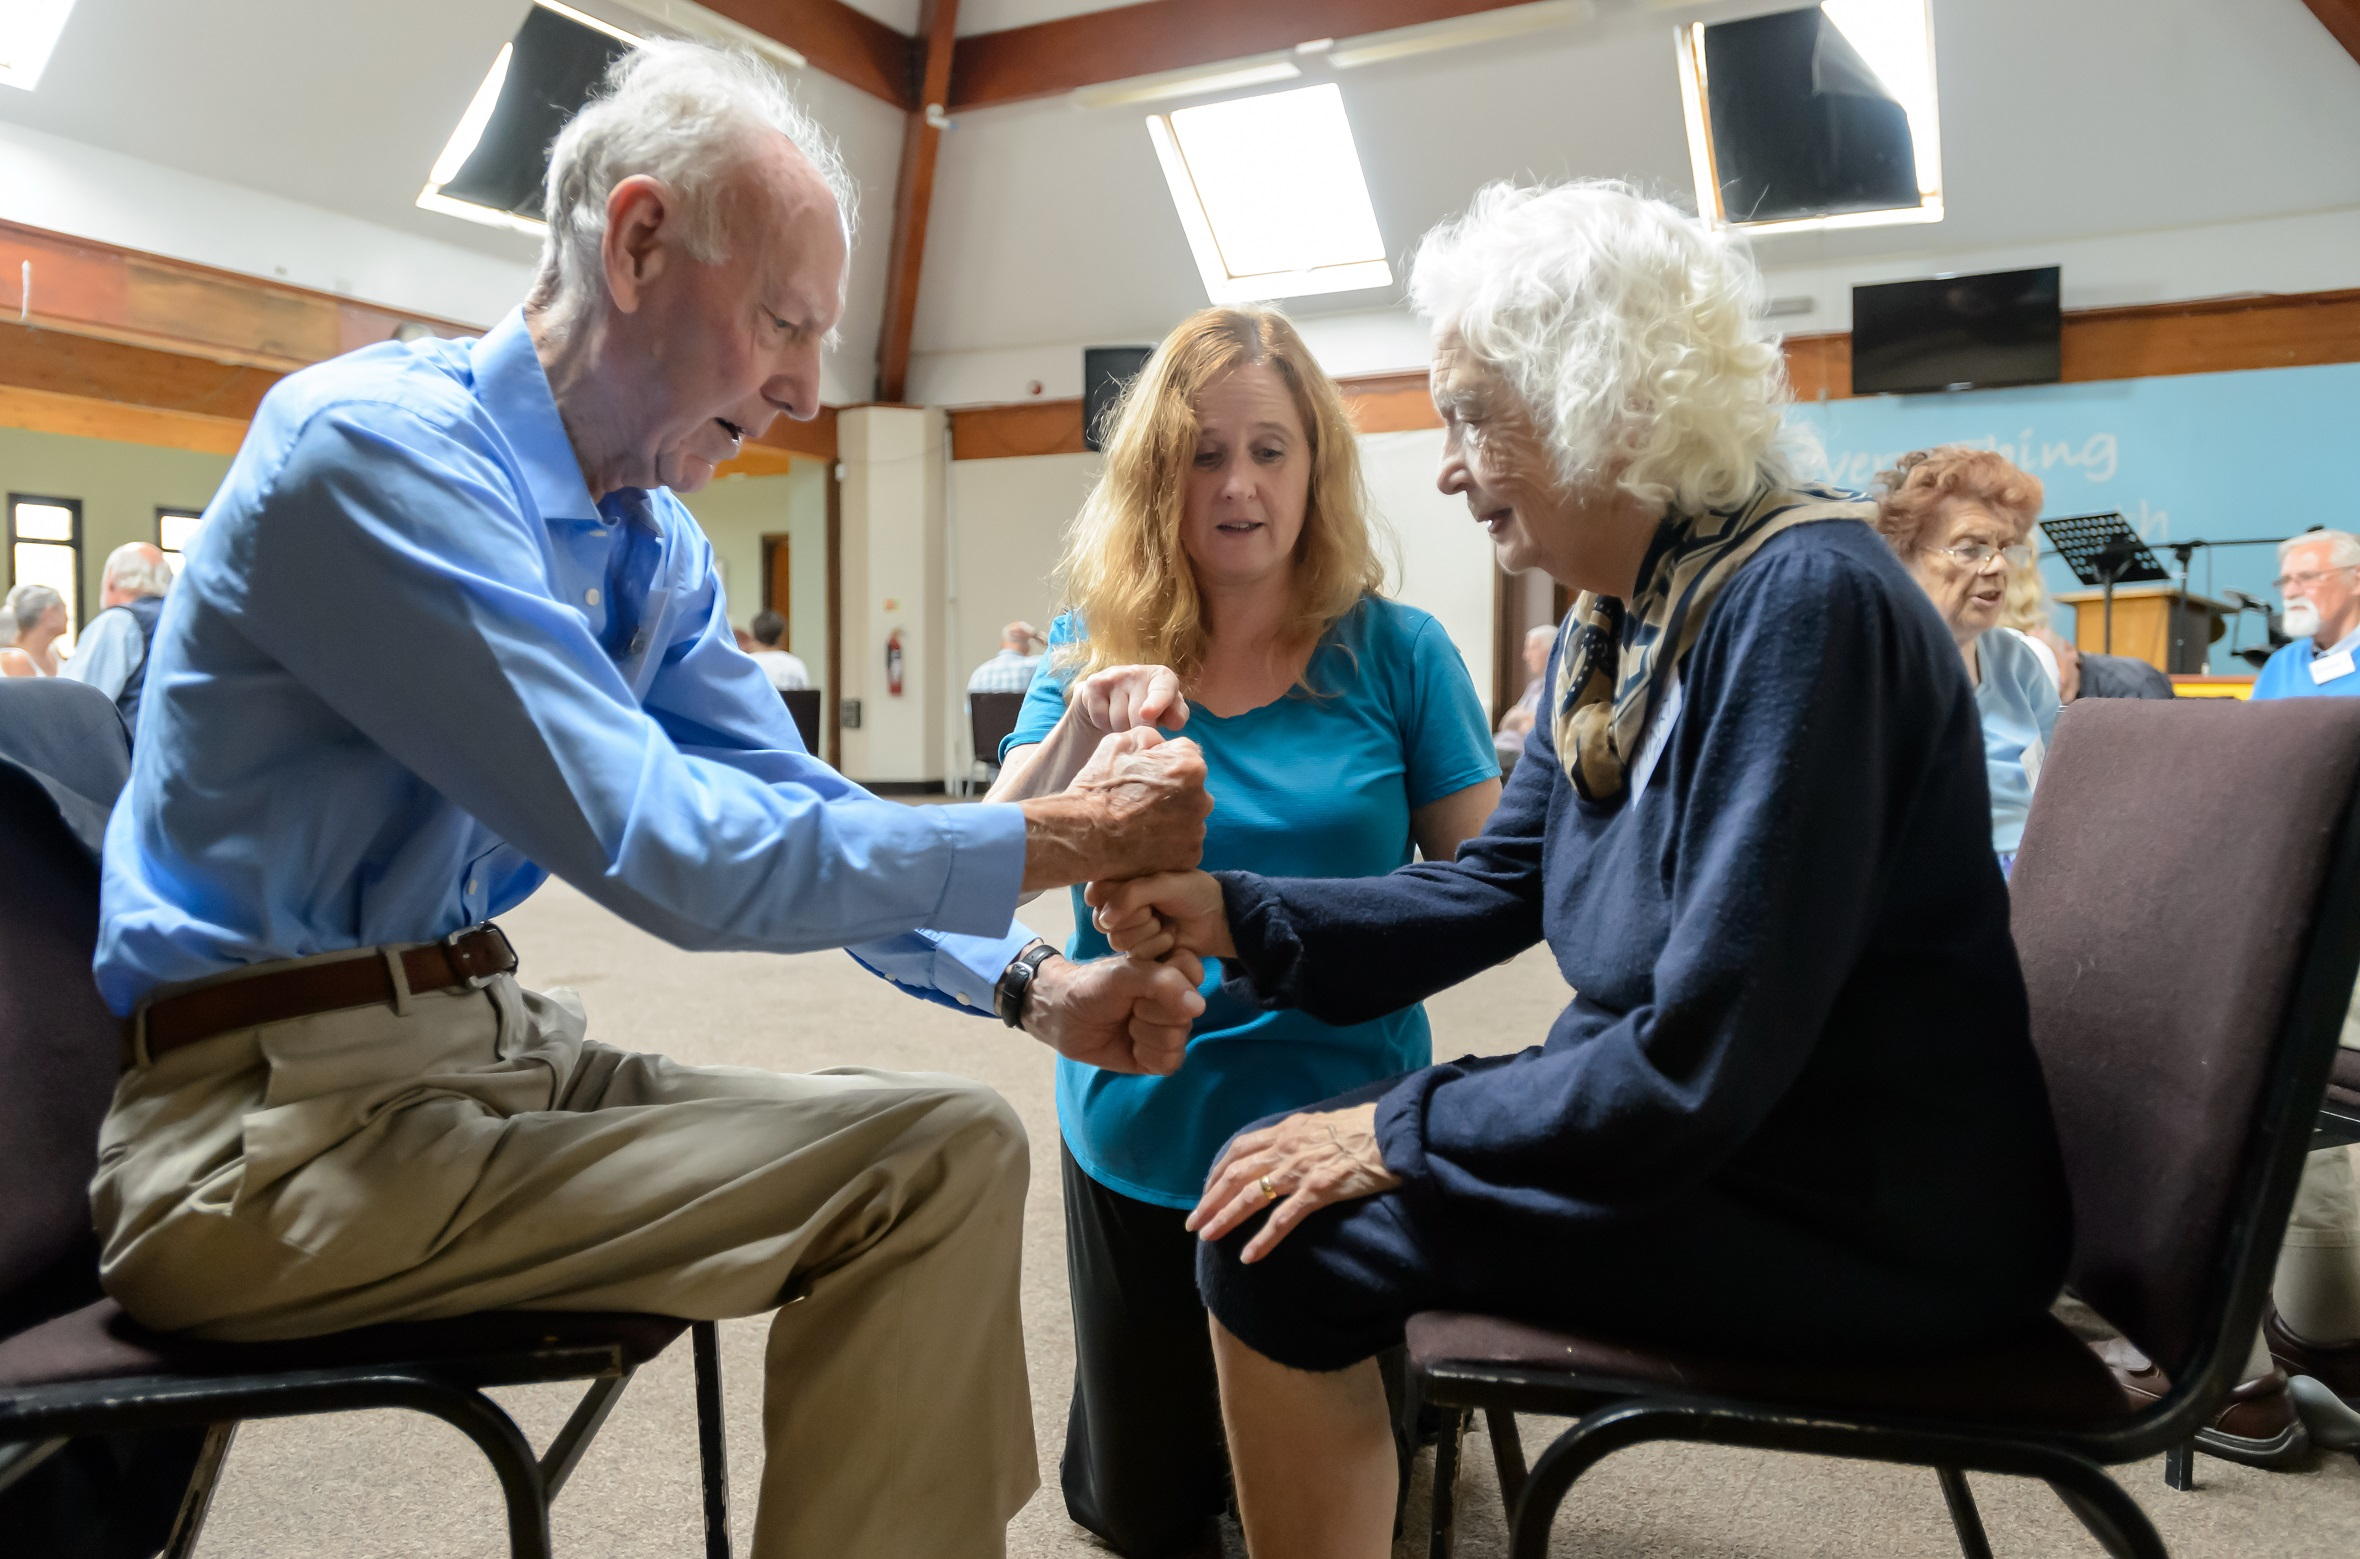 woman teaches older adults fitness